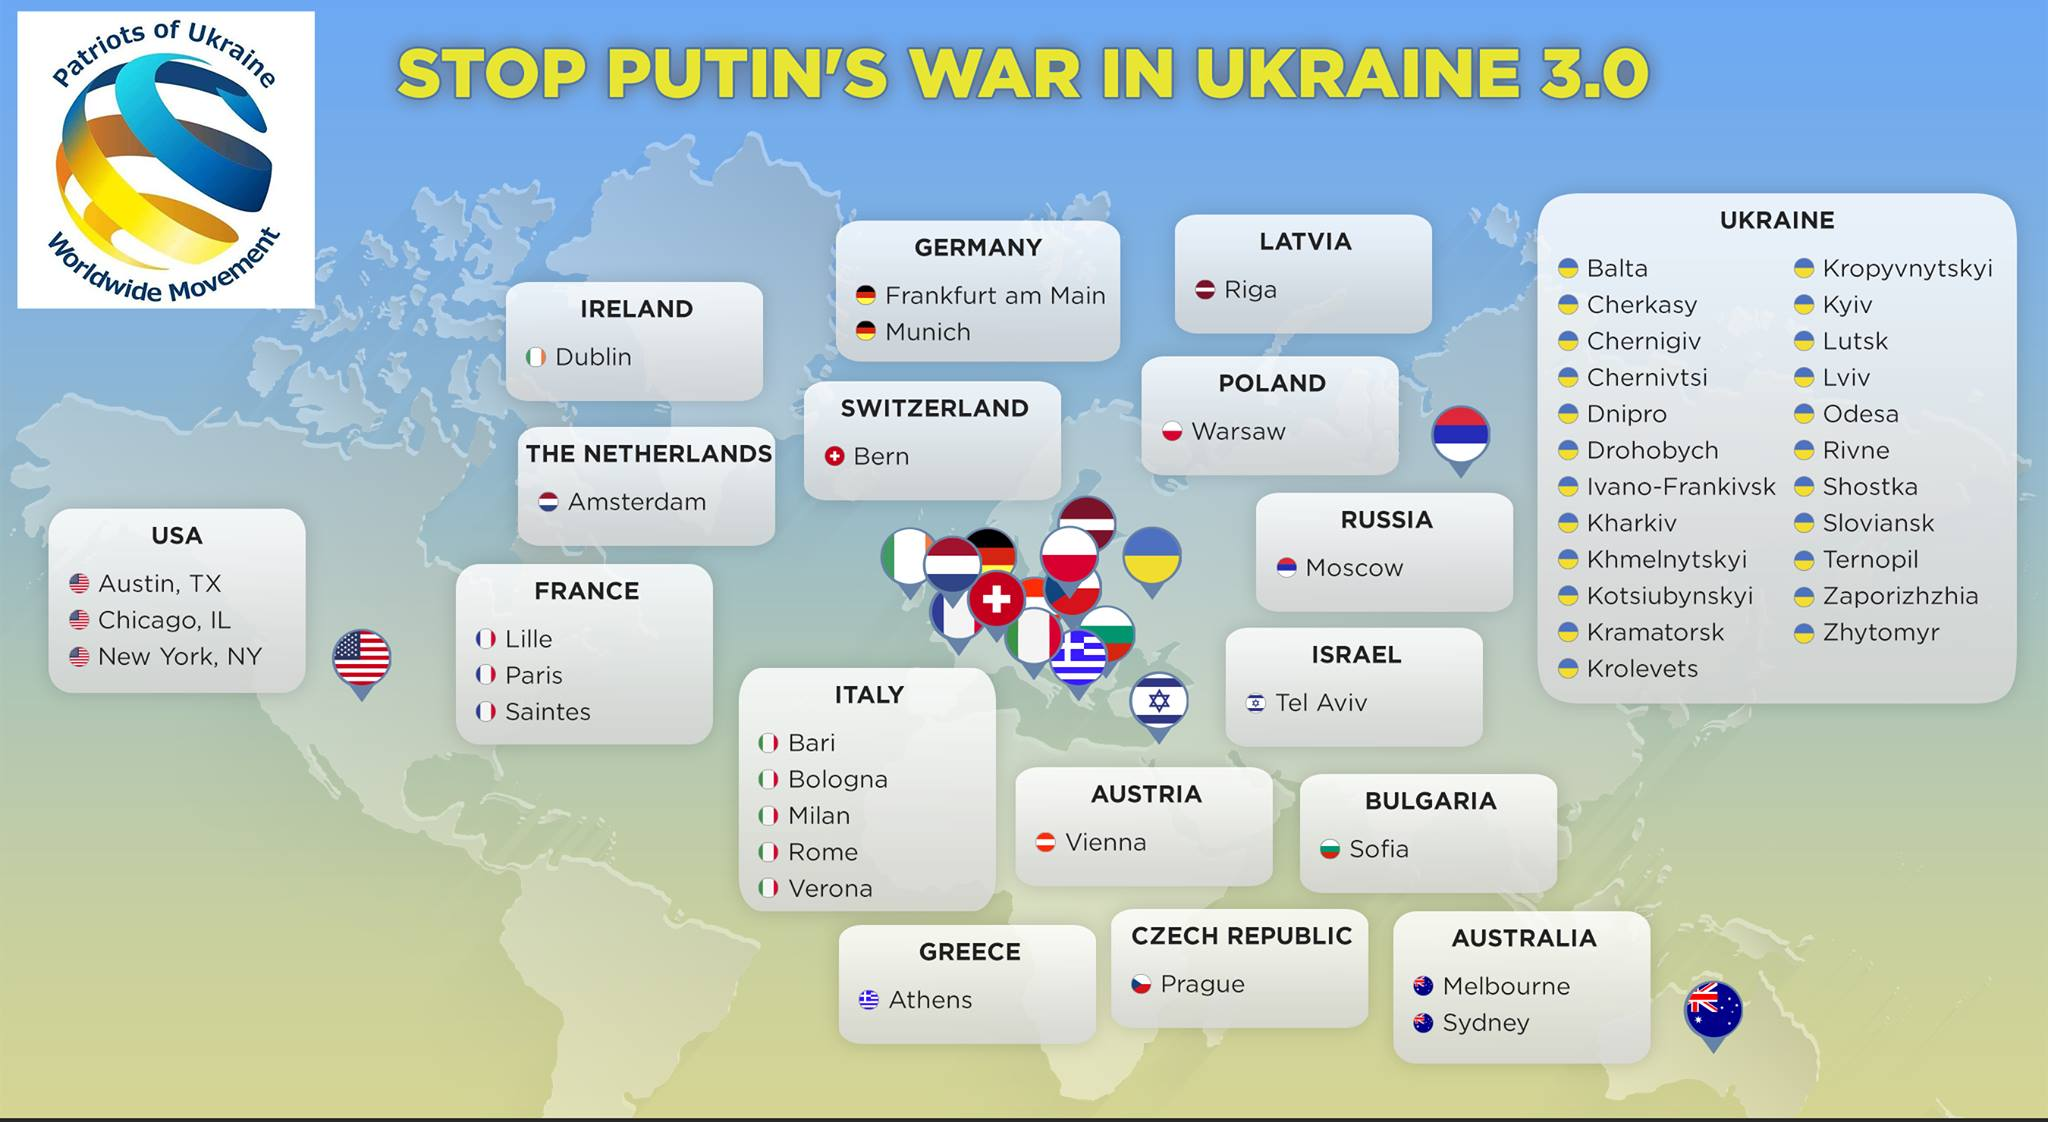 Stop Putin's War in Ukraine 3.0: Киев